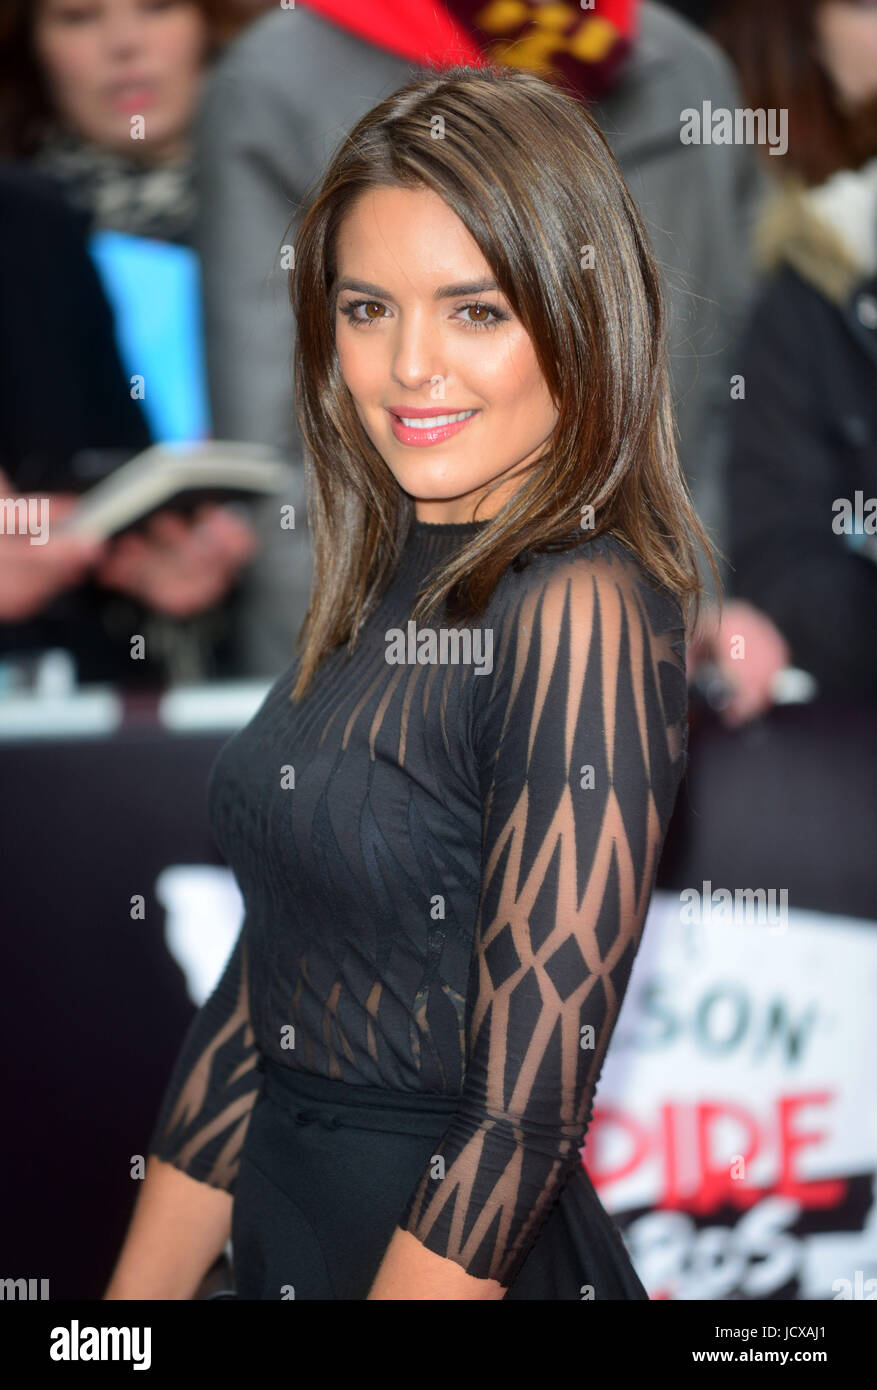 Young Olympia Valance nude photos 2019